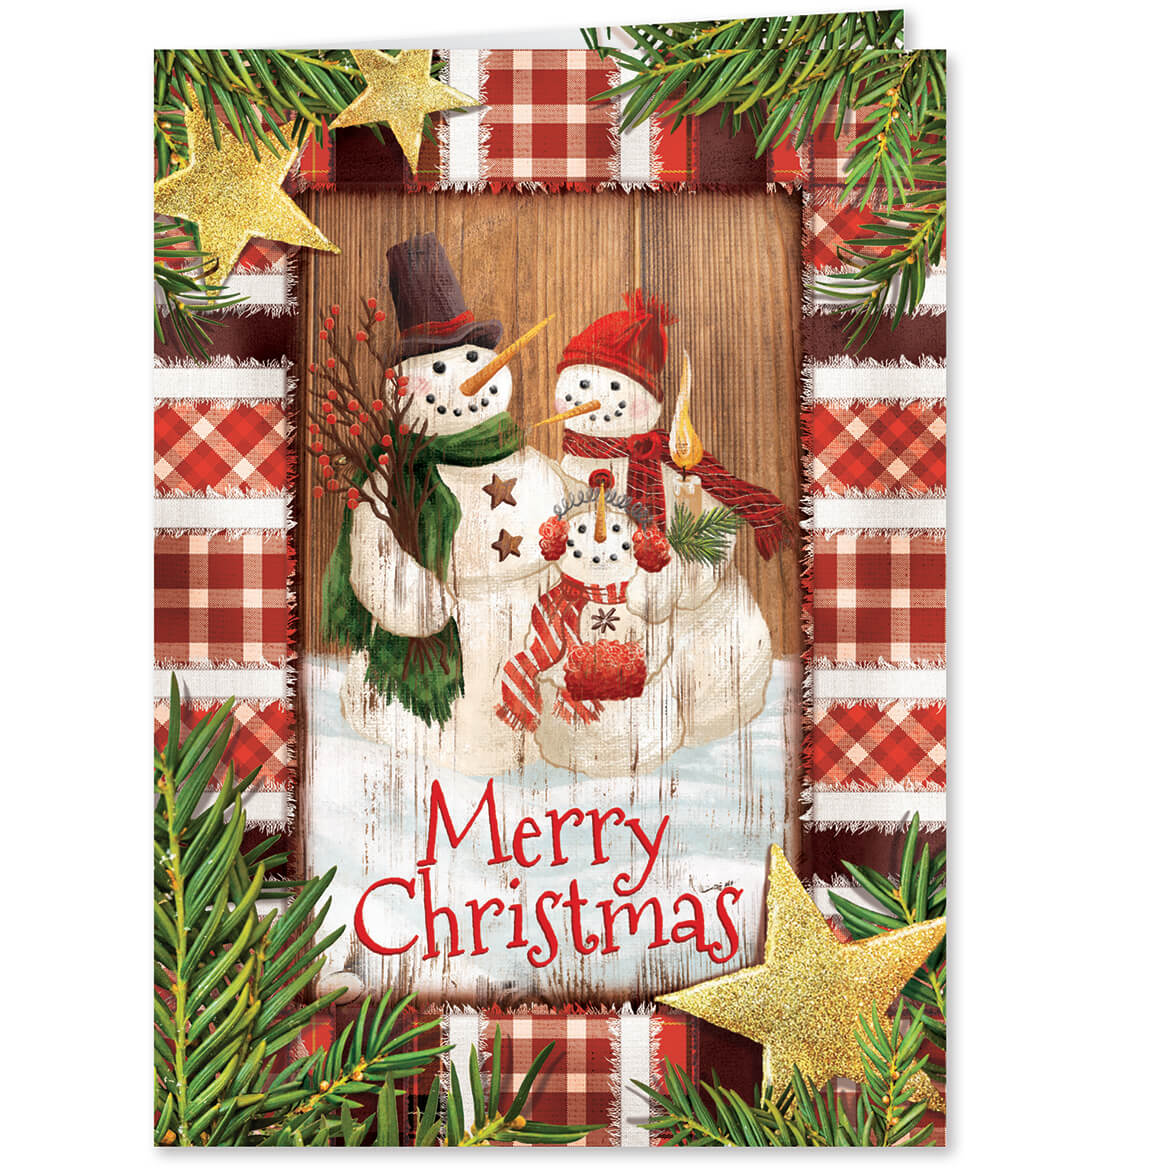 Calico Snowman - Personalized Christmas Cards - Walter Drake